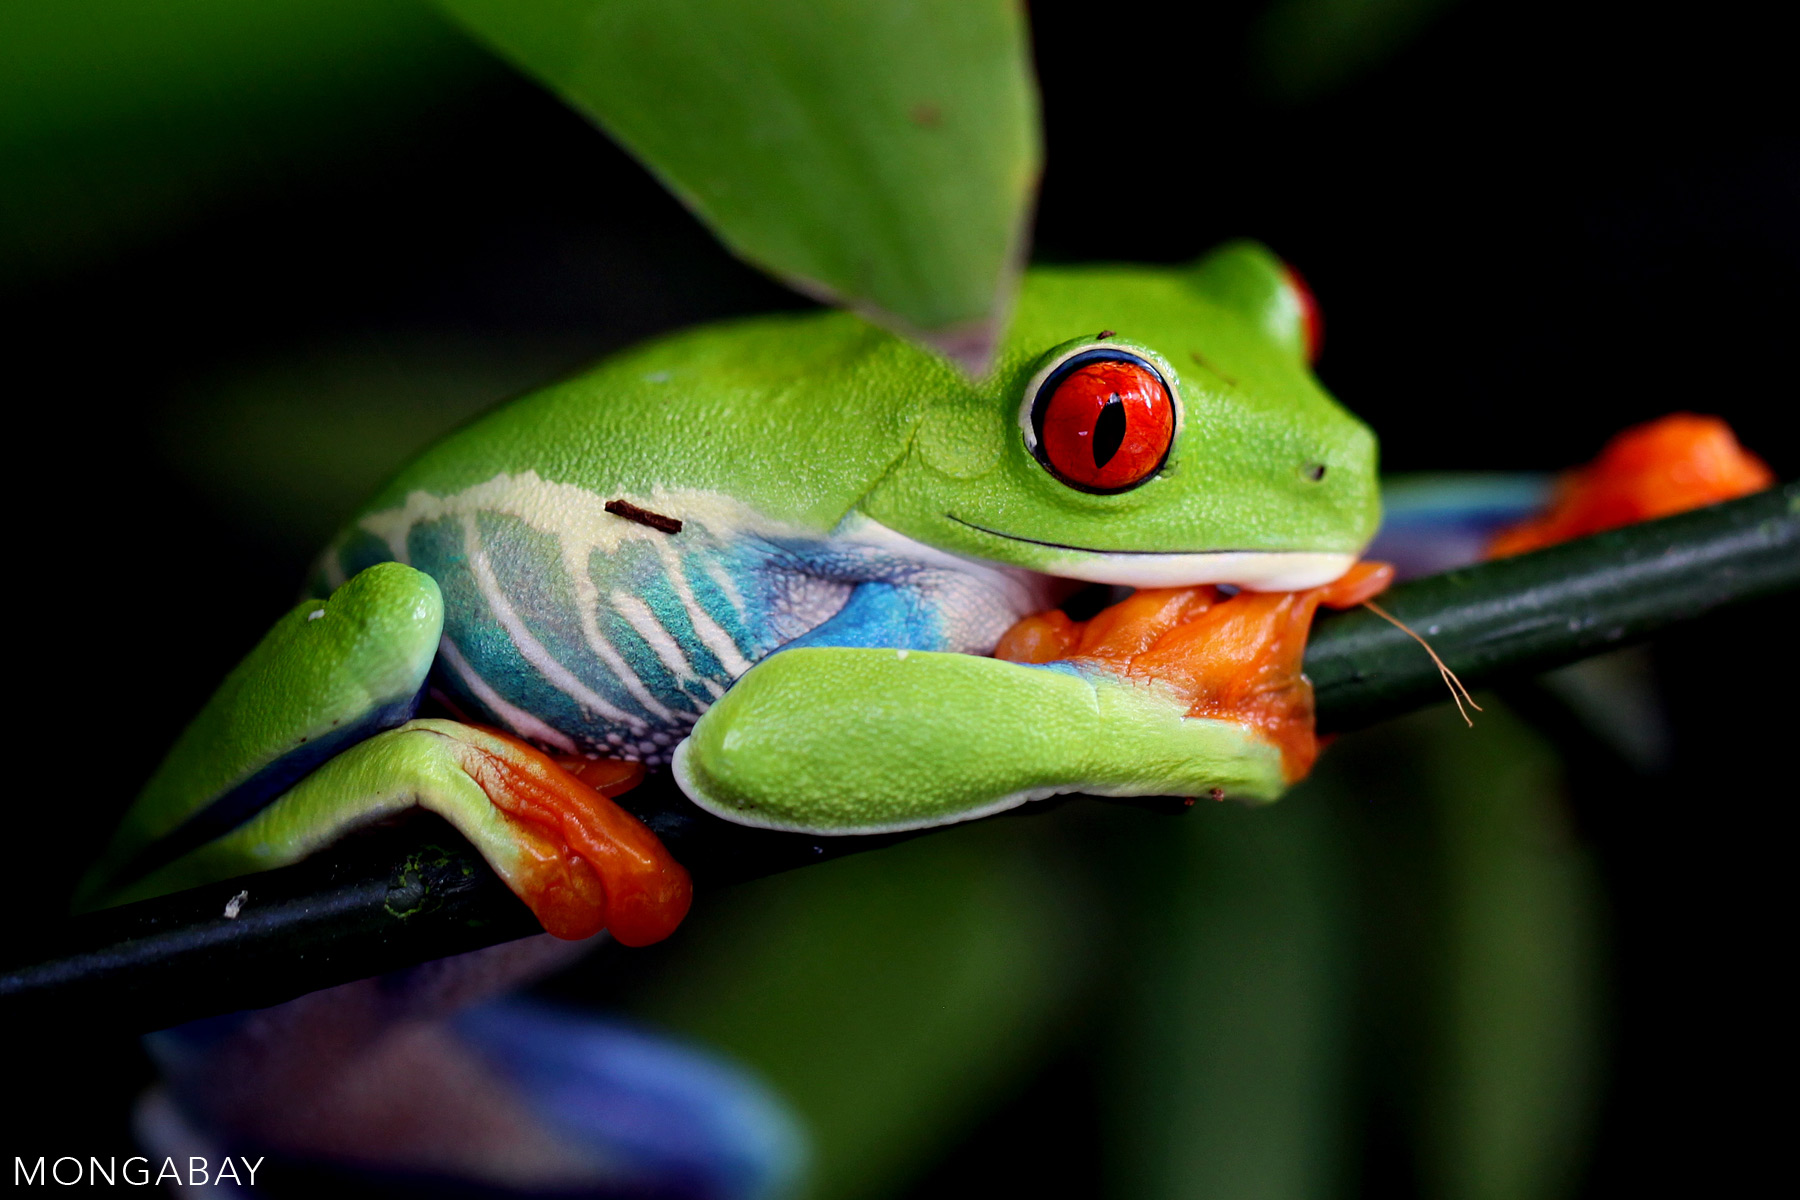 The top 10 most biodiverse countries